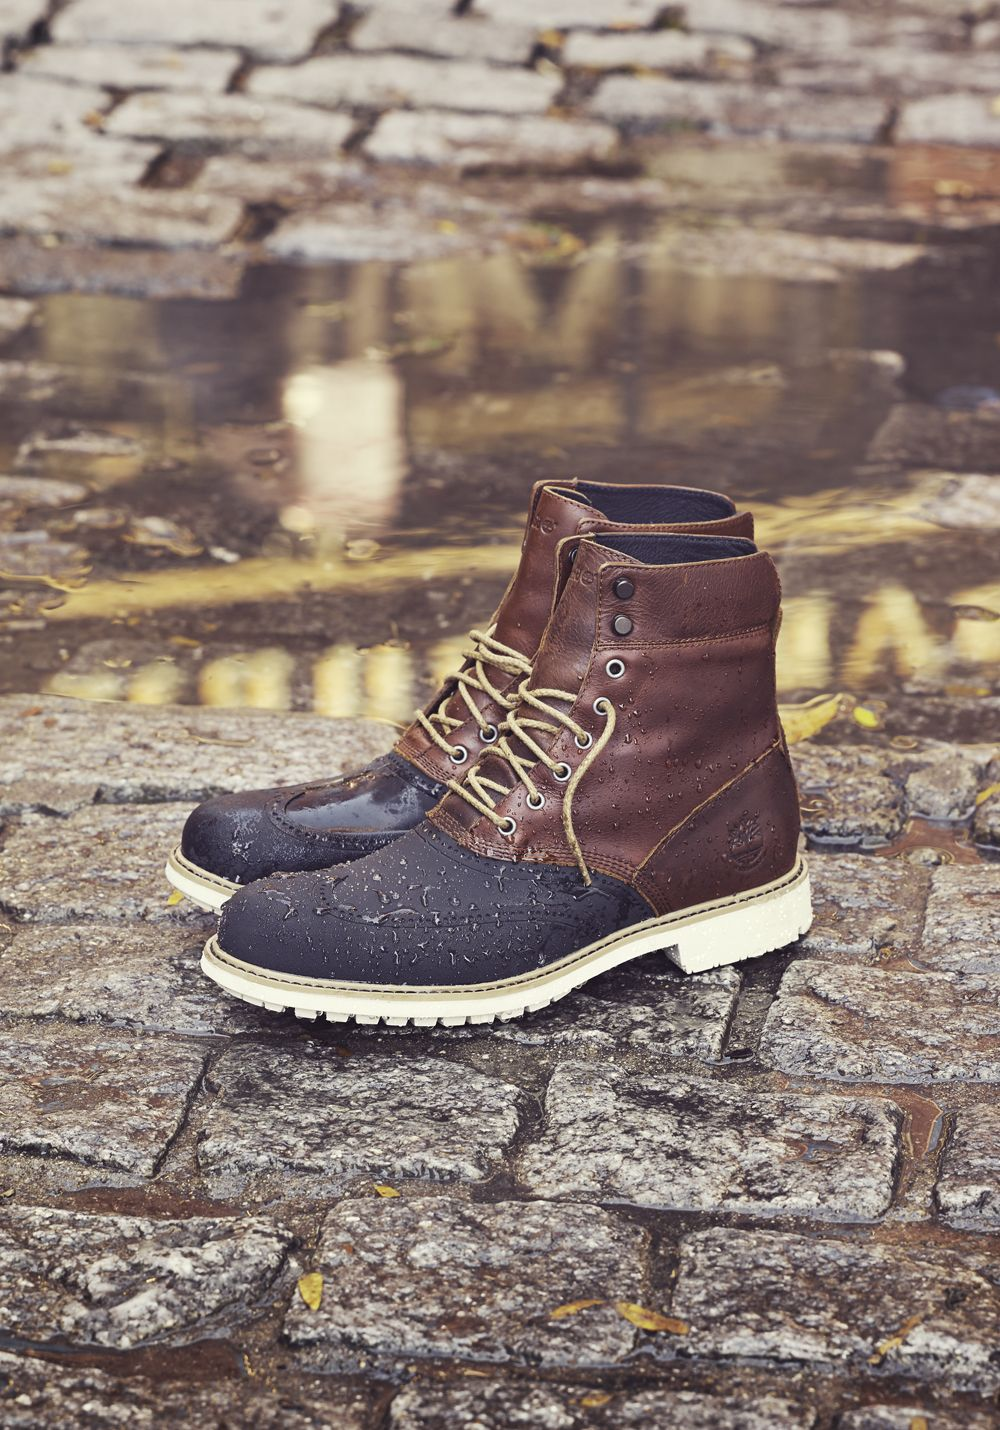 Timberland Stormbuck Duck boot, for wet and stormy days